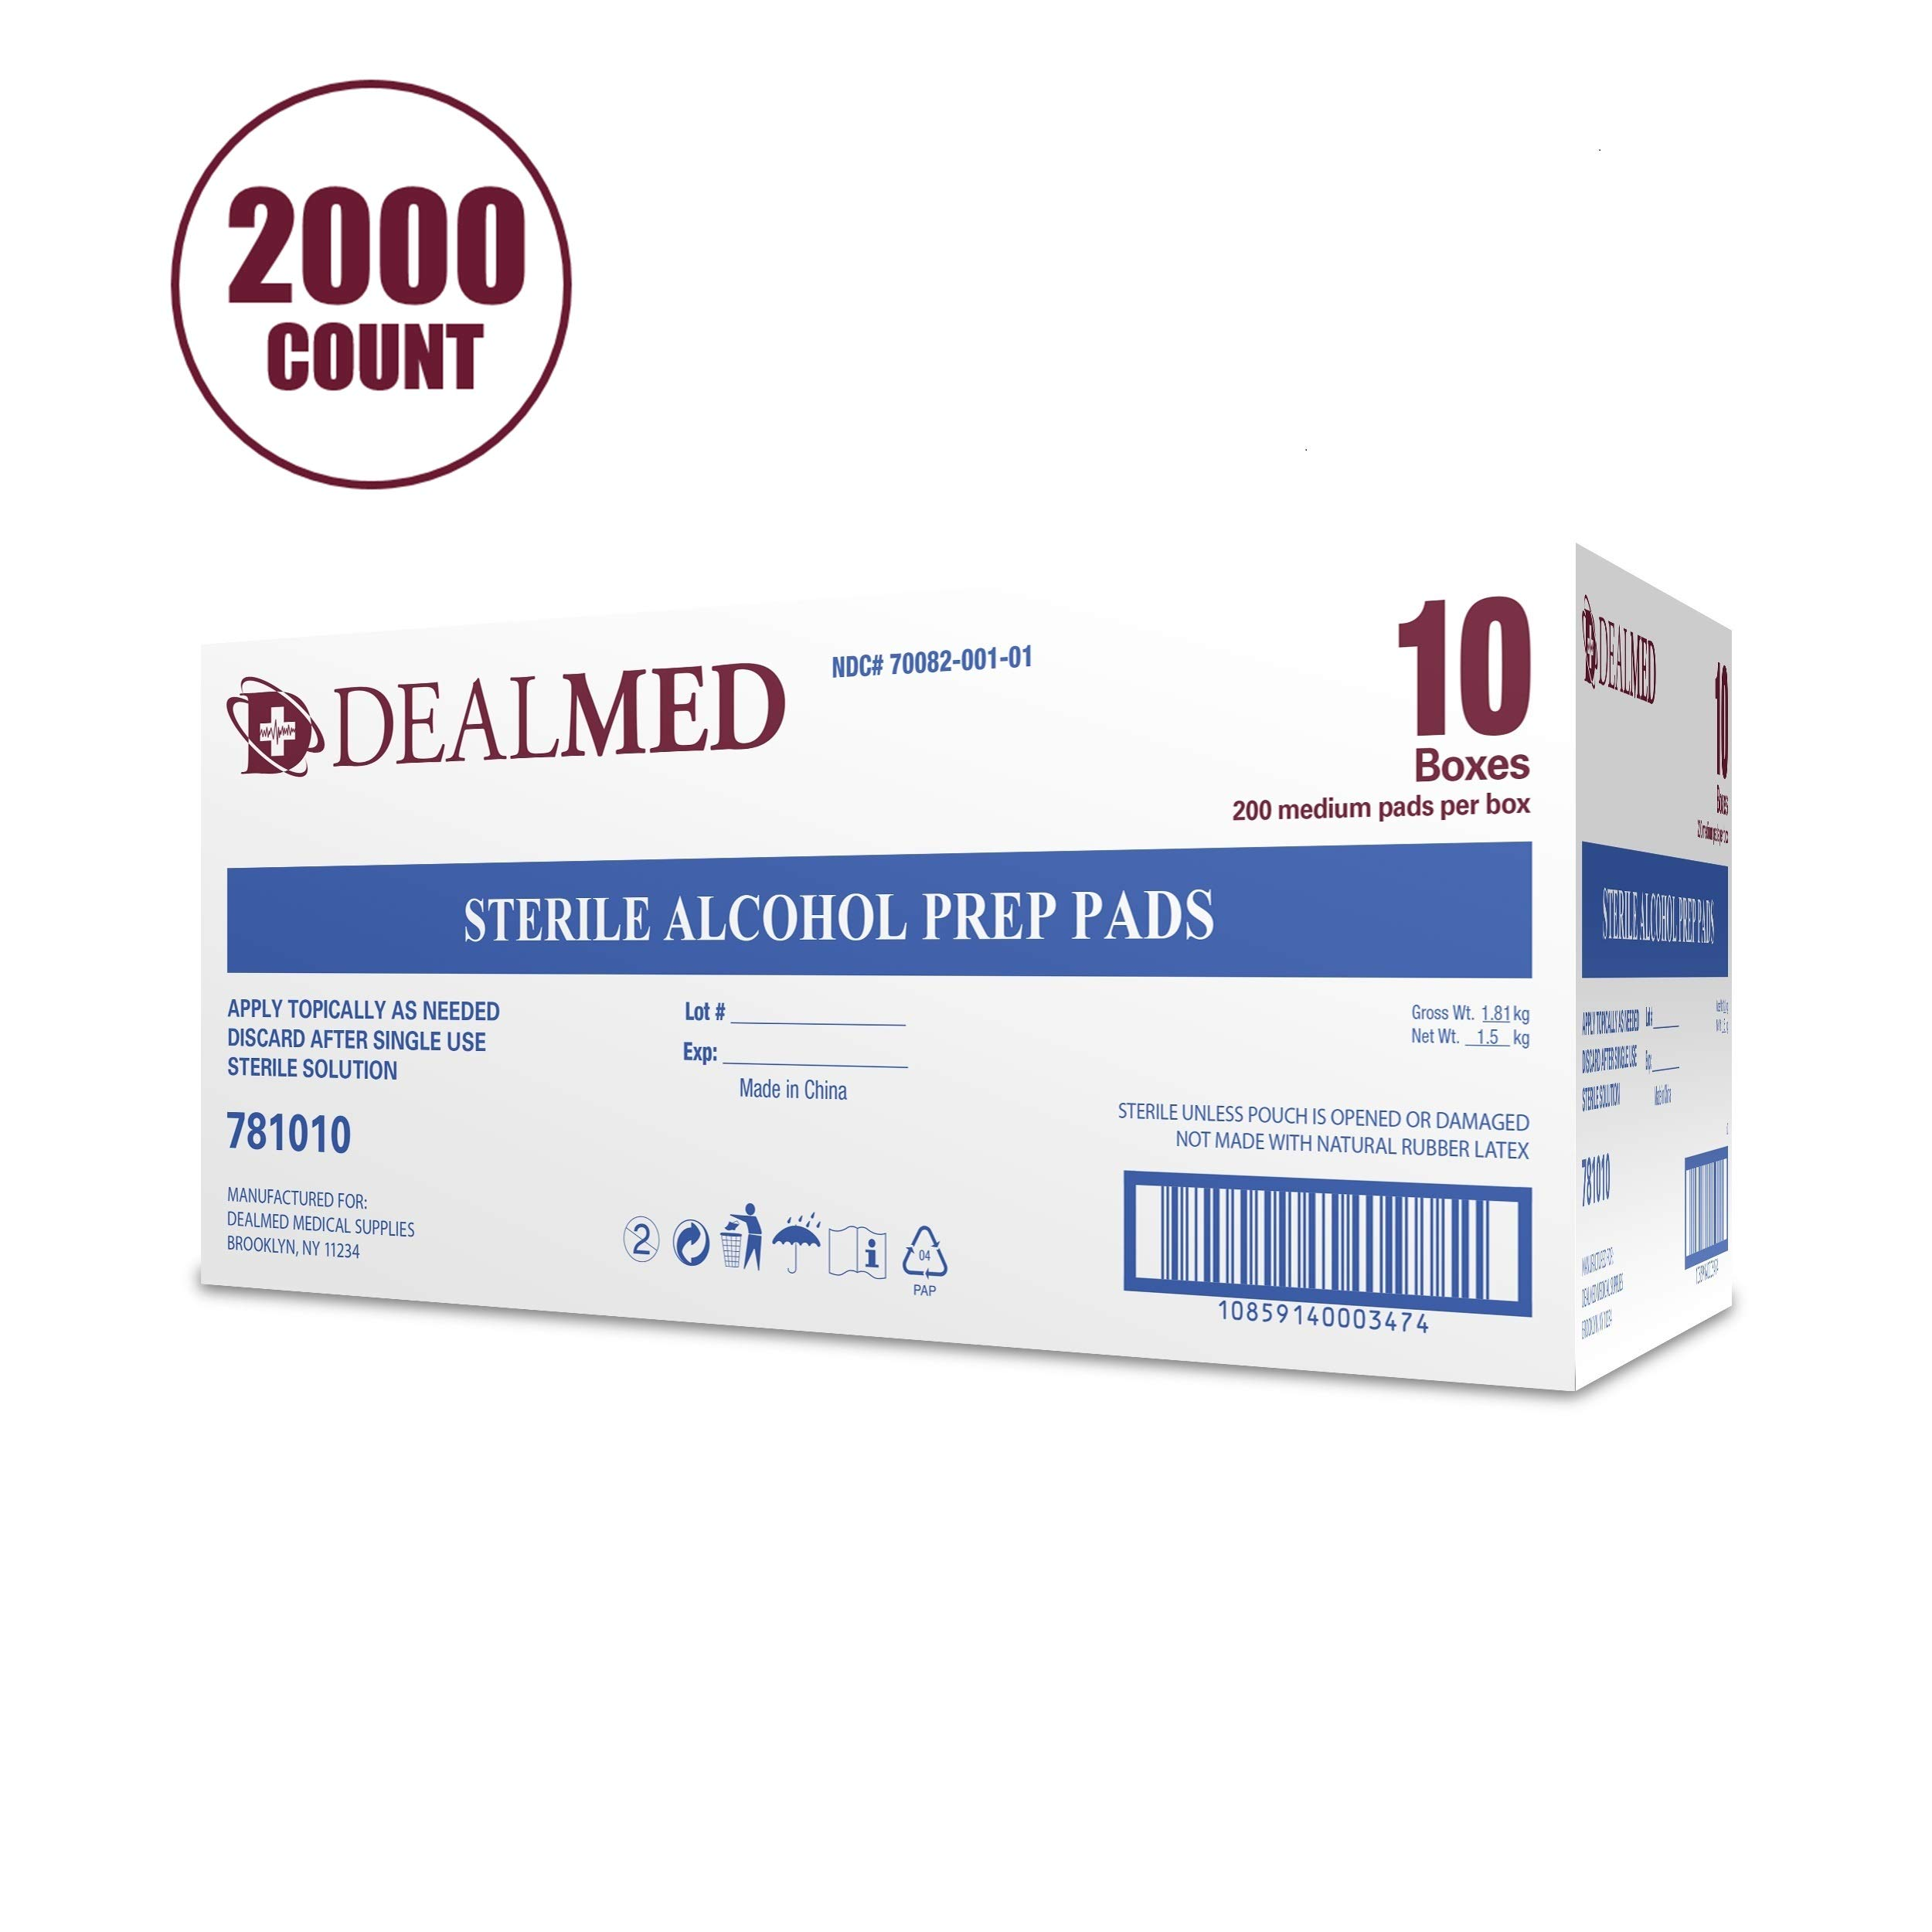 Dealmed Sterile Alcohol Prep Pads, Antiseptic Latex-Free Wipes, Gamma Sterilized, 2000 Count by Dealmed